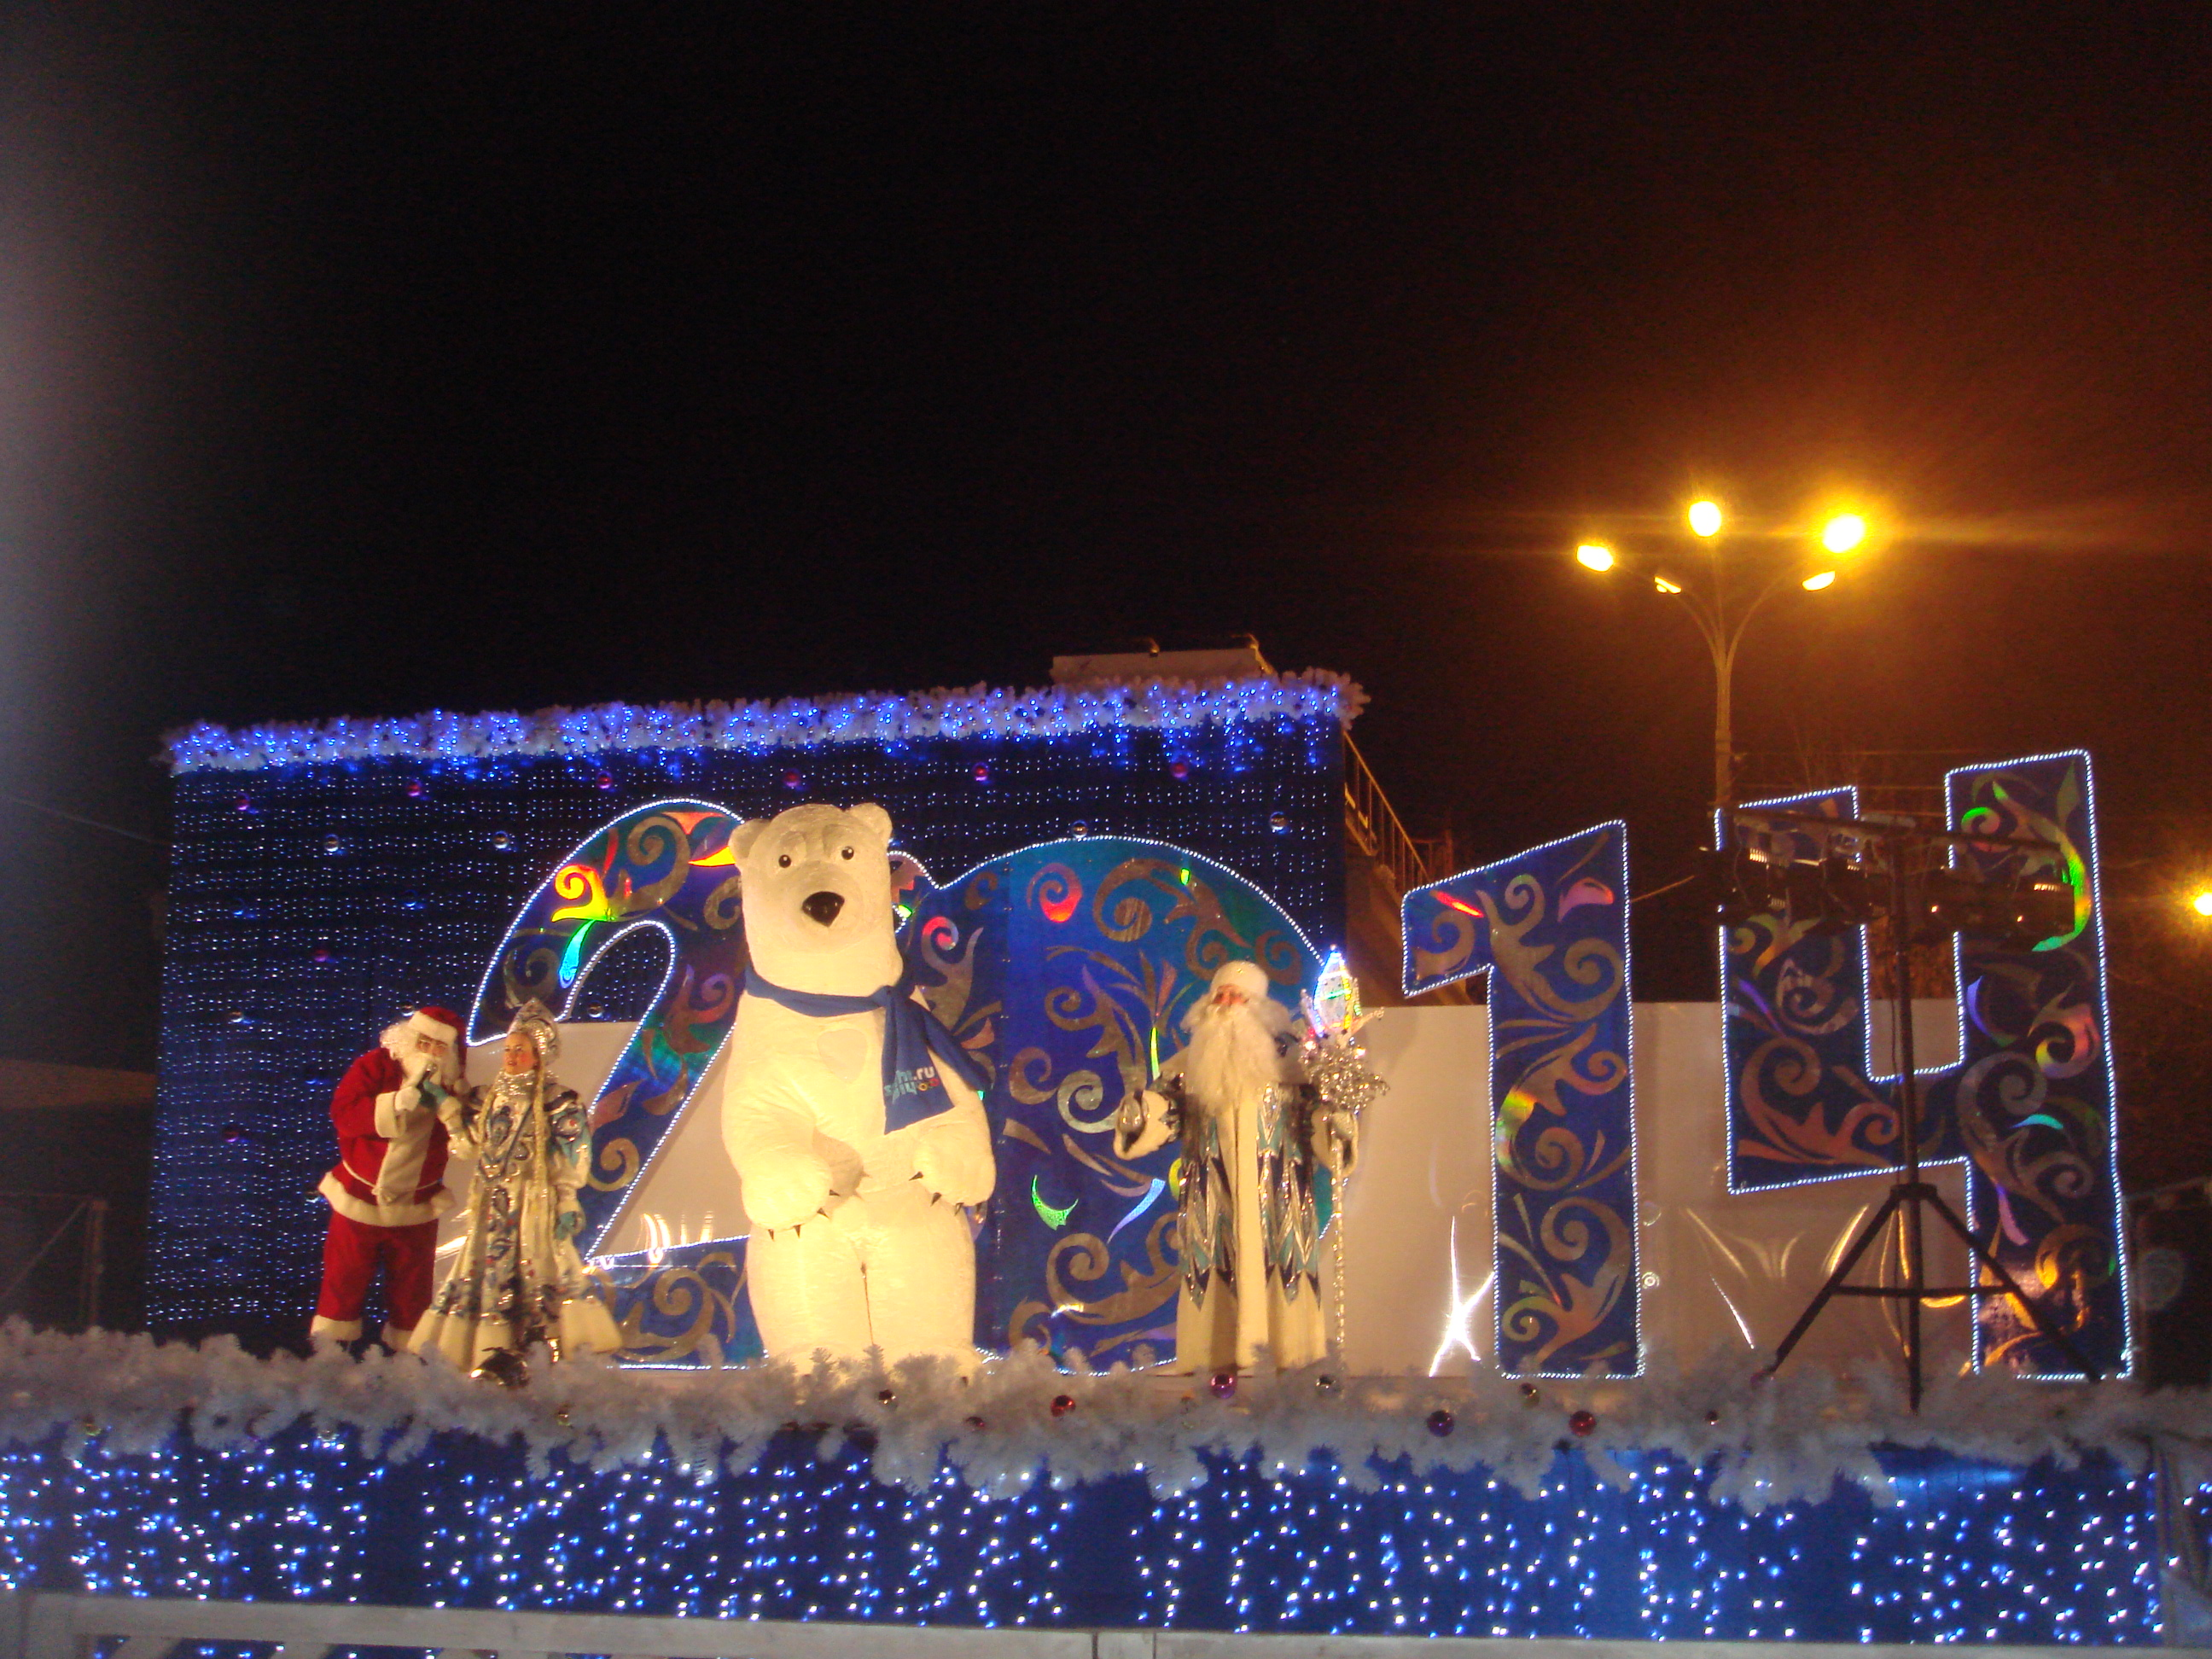 2014 Parade Float together with Father Frost